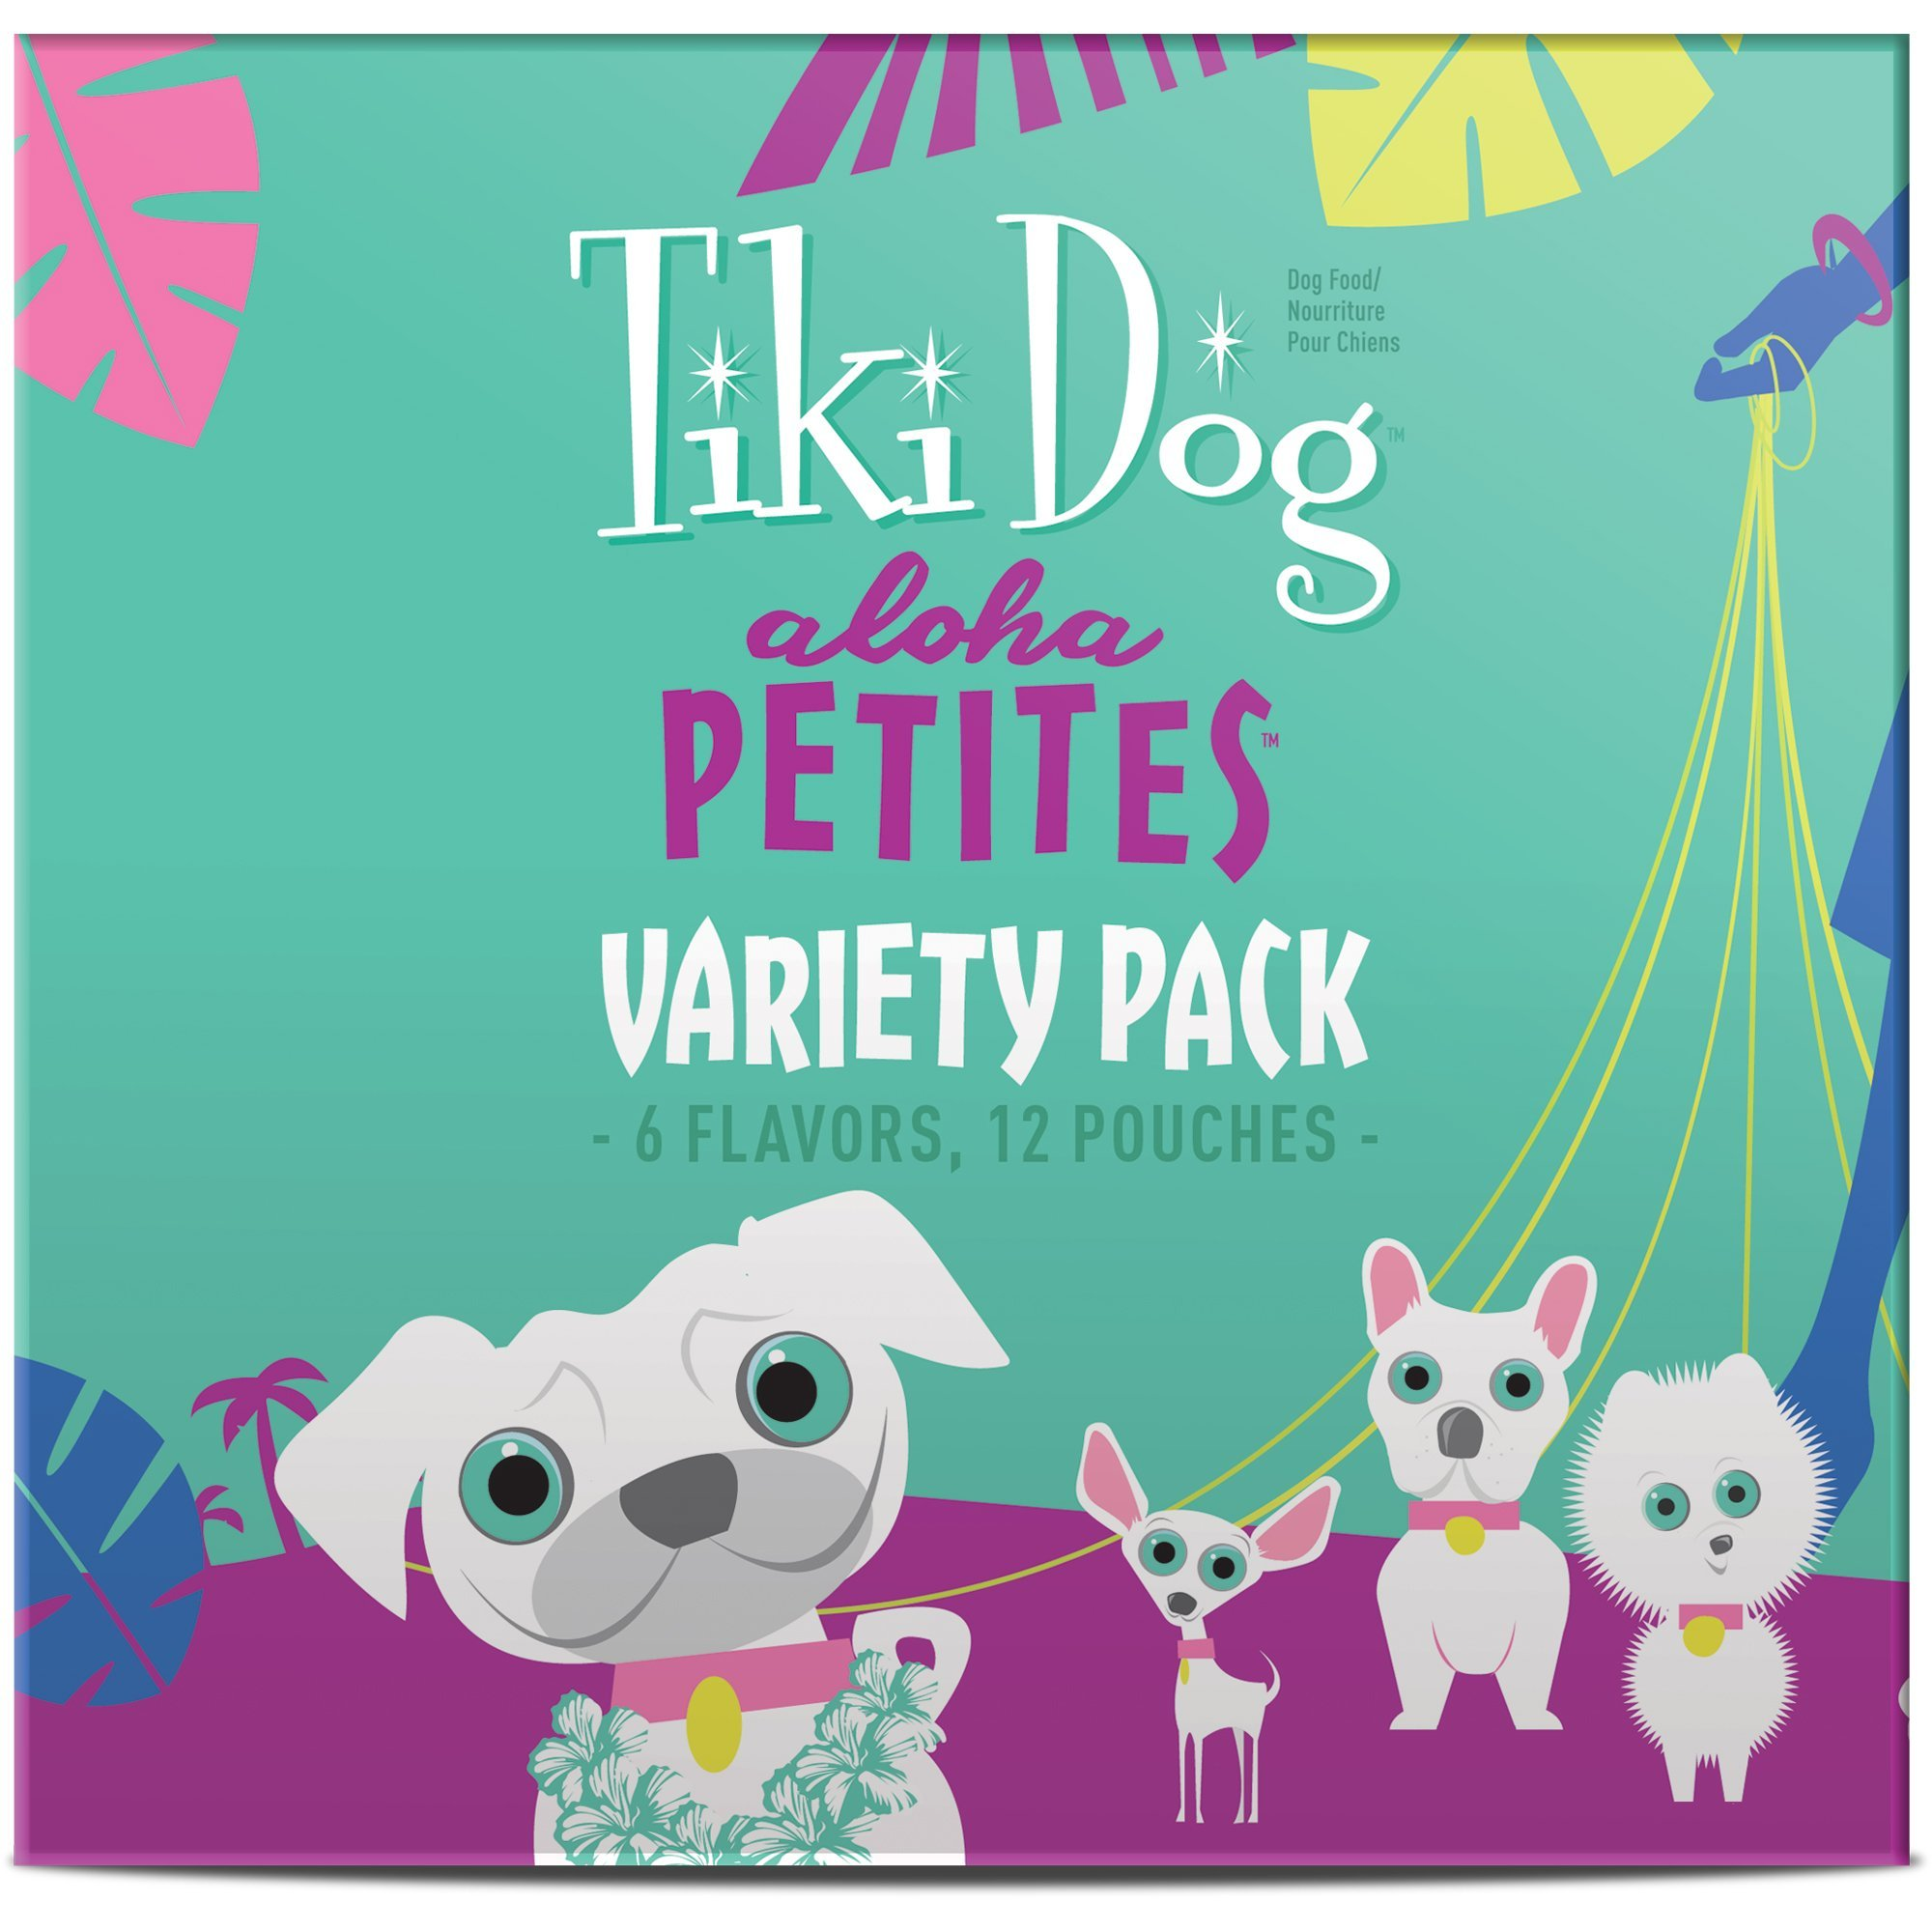 Tiki Dog Aloha Petites Variety Pack Small Breed Wet Dog Food Pouches, 3.5 oz, Case of 12